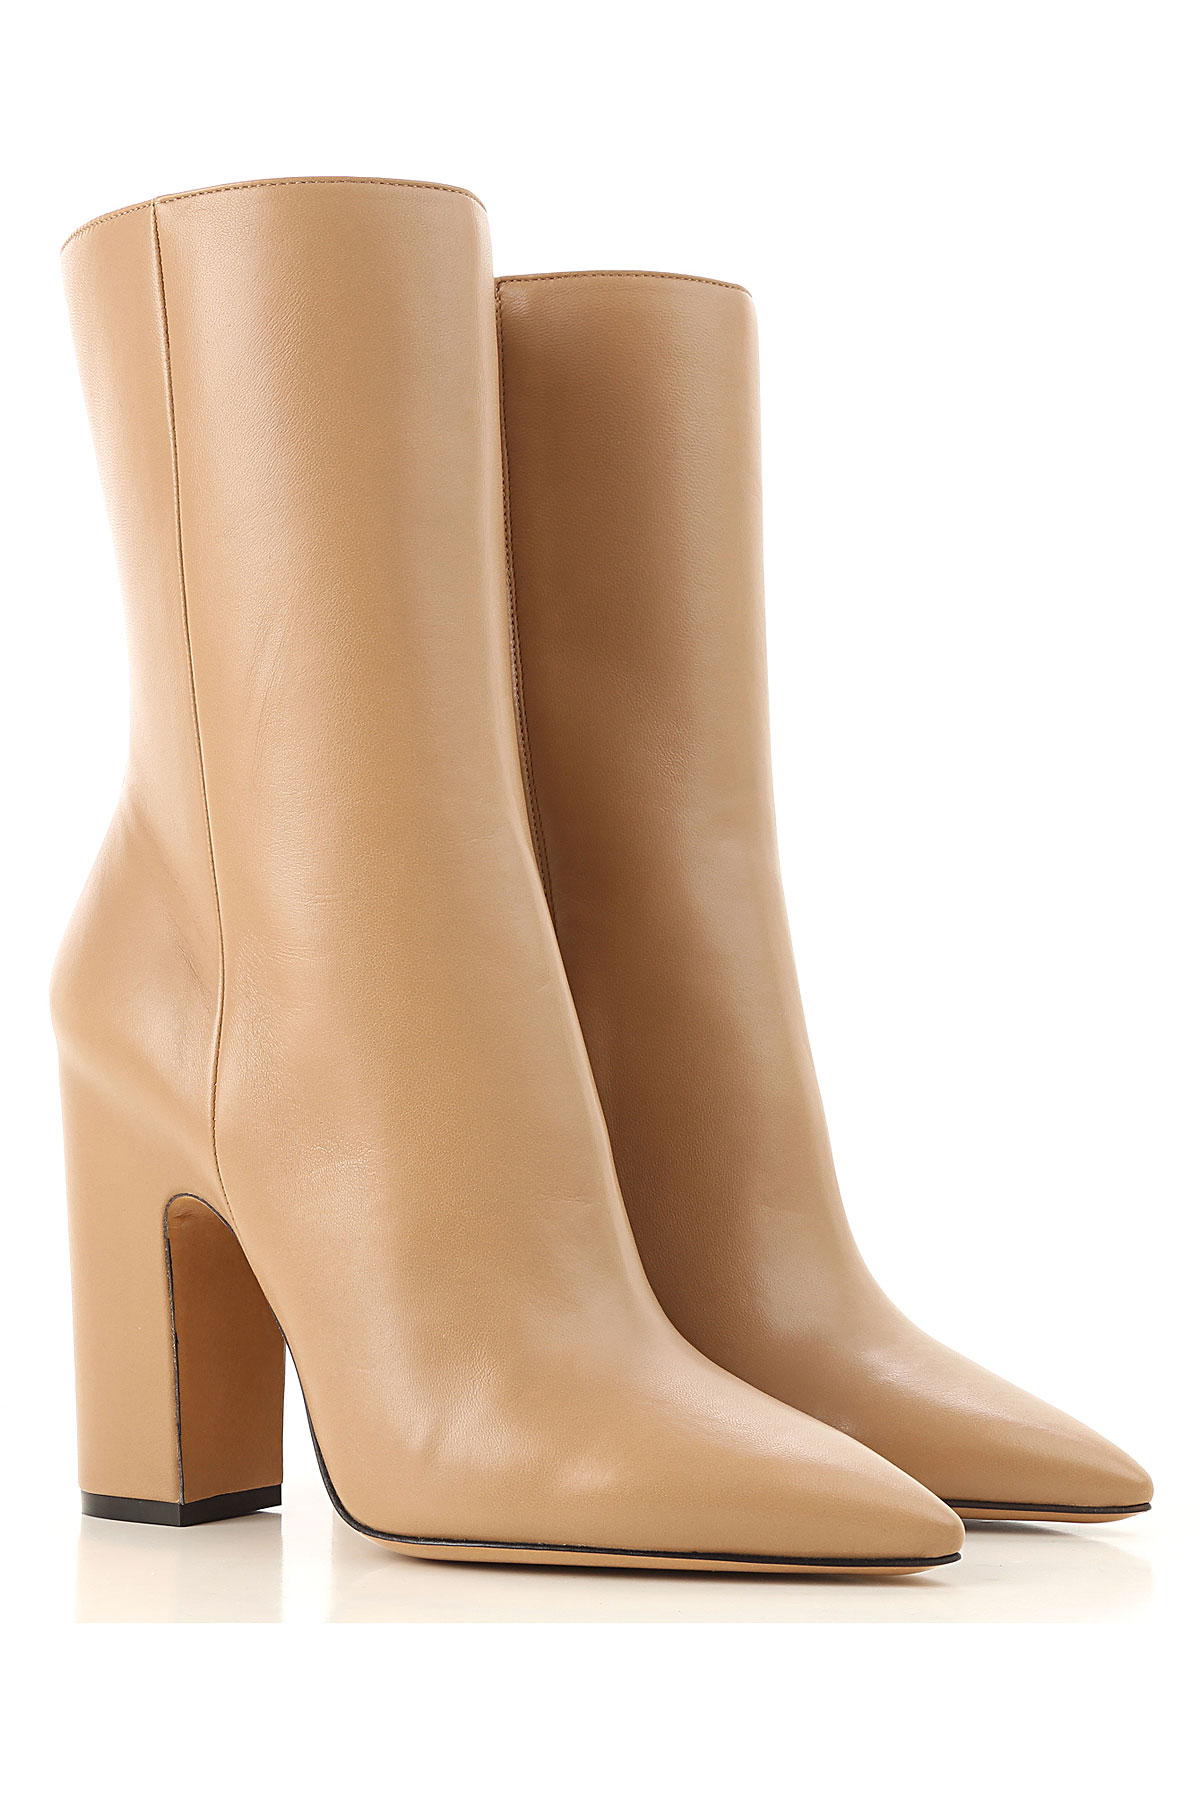 Image of Maison Martin Margiela Boots for Women, Booties, cappuccino, Leather, 2017, 10 6 7 8